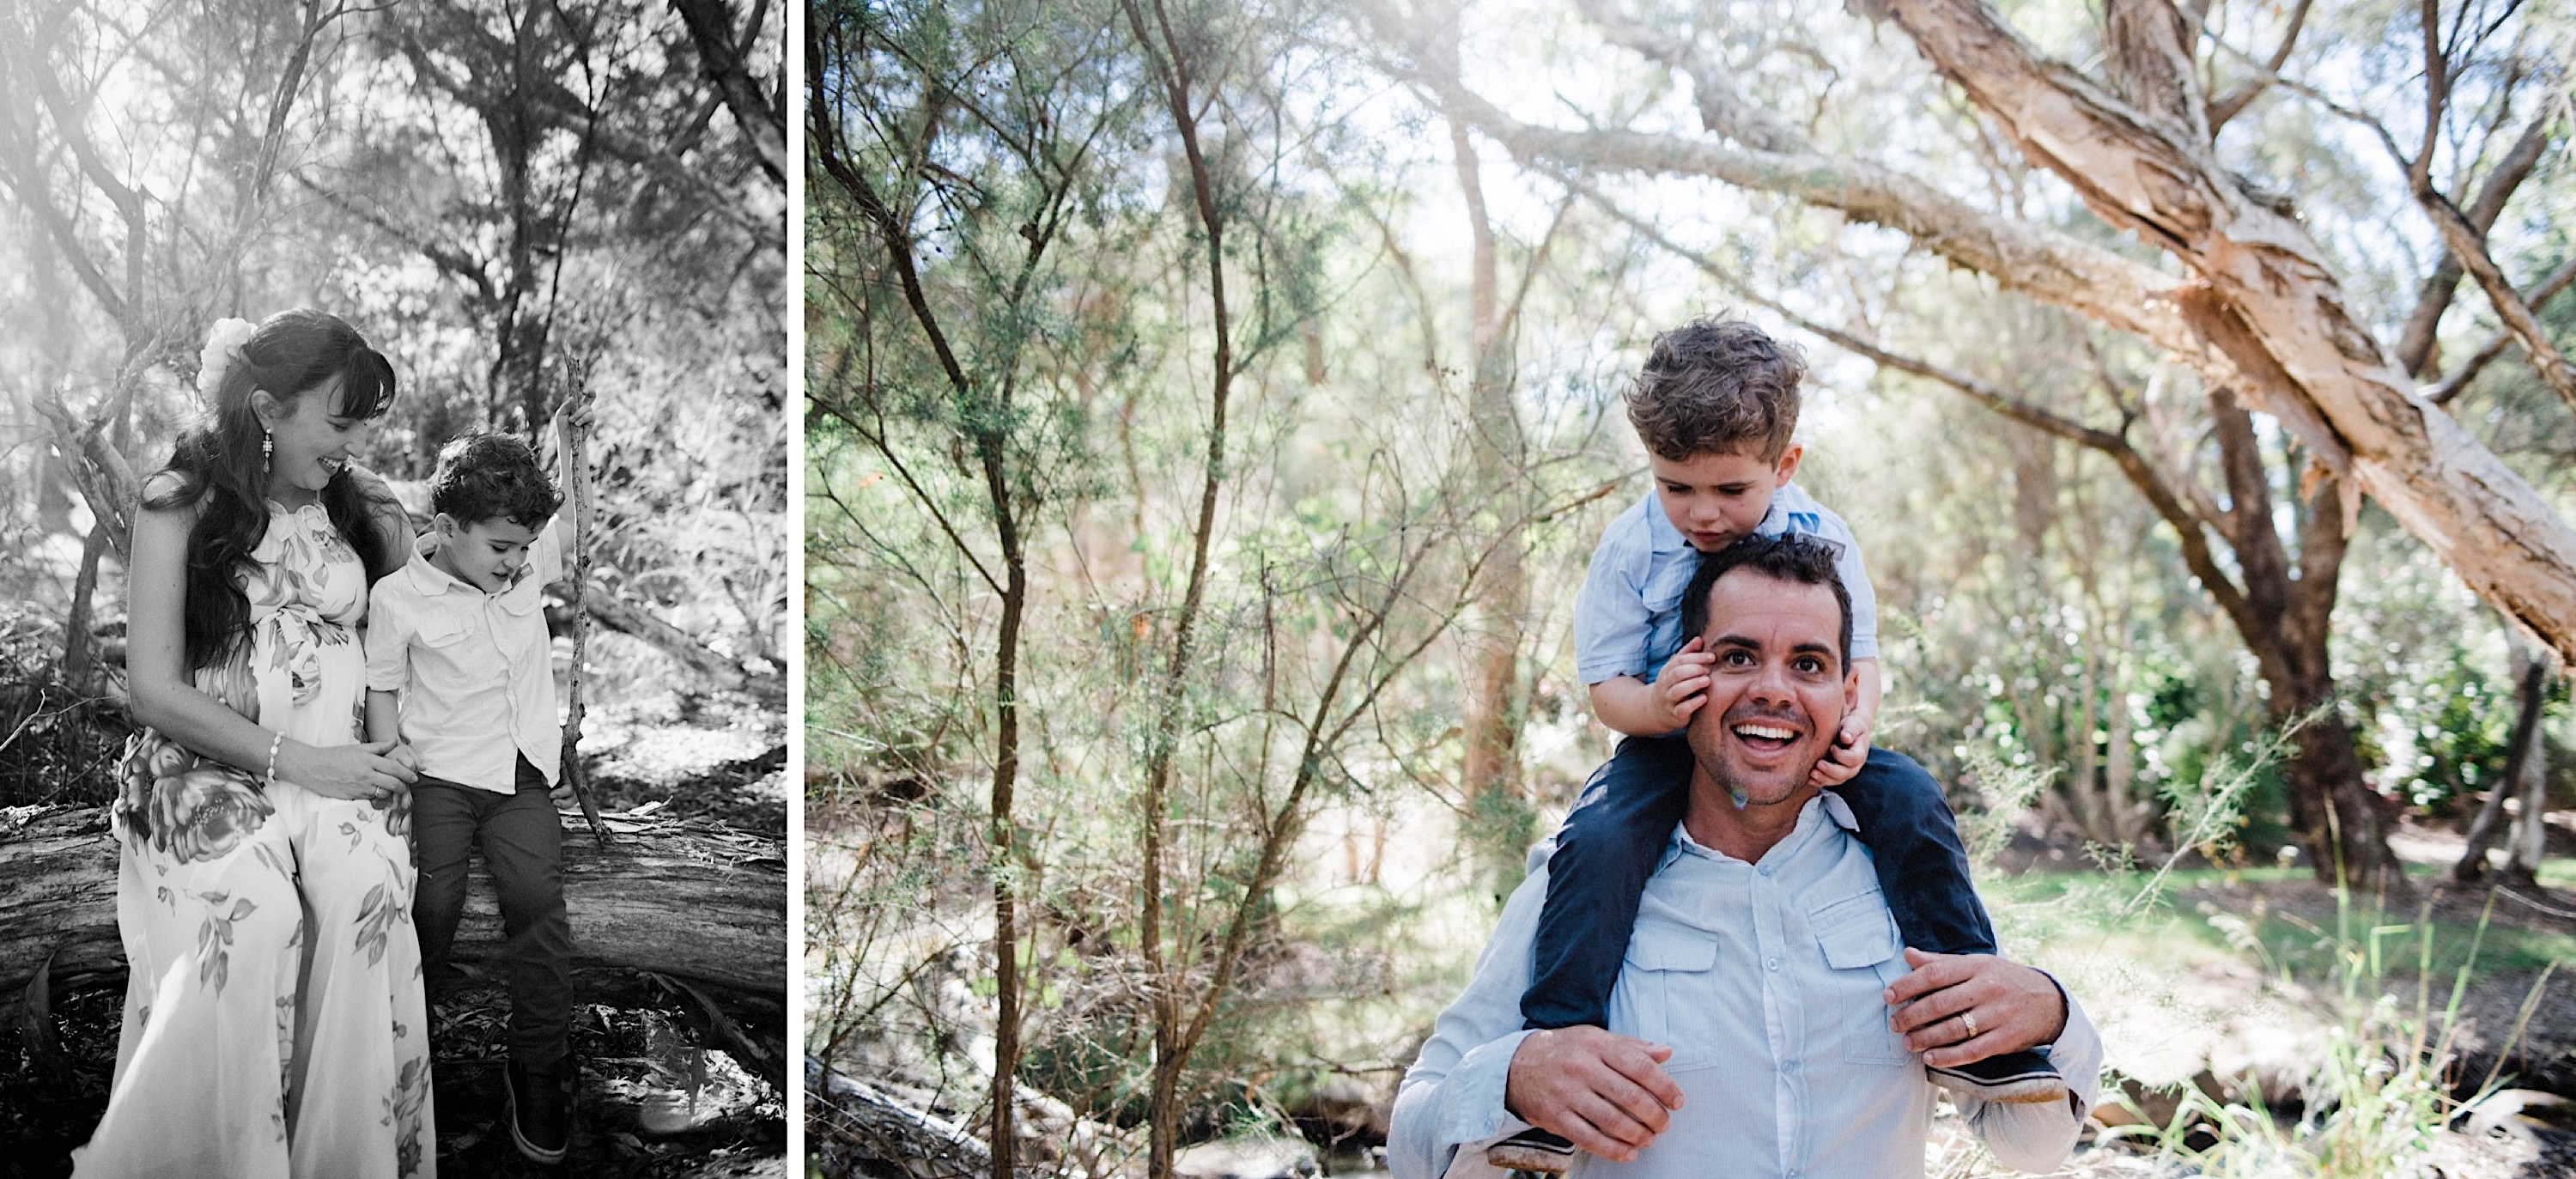 Two photos taken by a Lifestyle Family Photographer of a little boy, one sitting next to his Mum, the other as he sits on his Dad's shoulders.